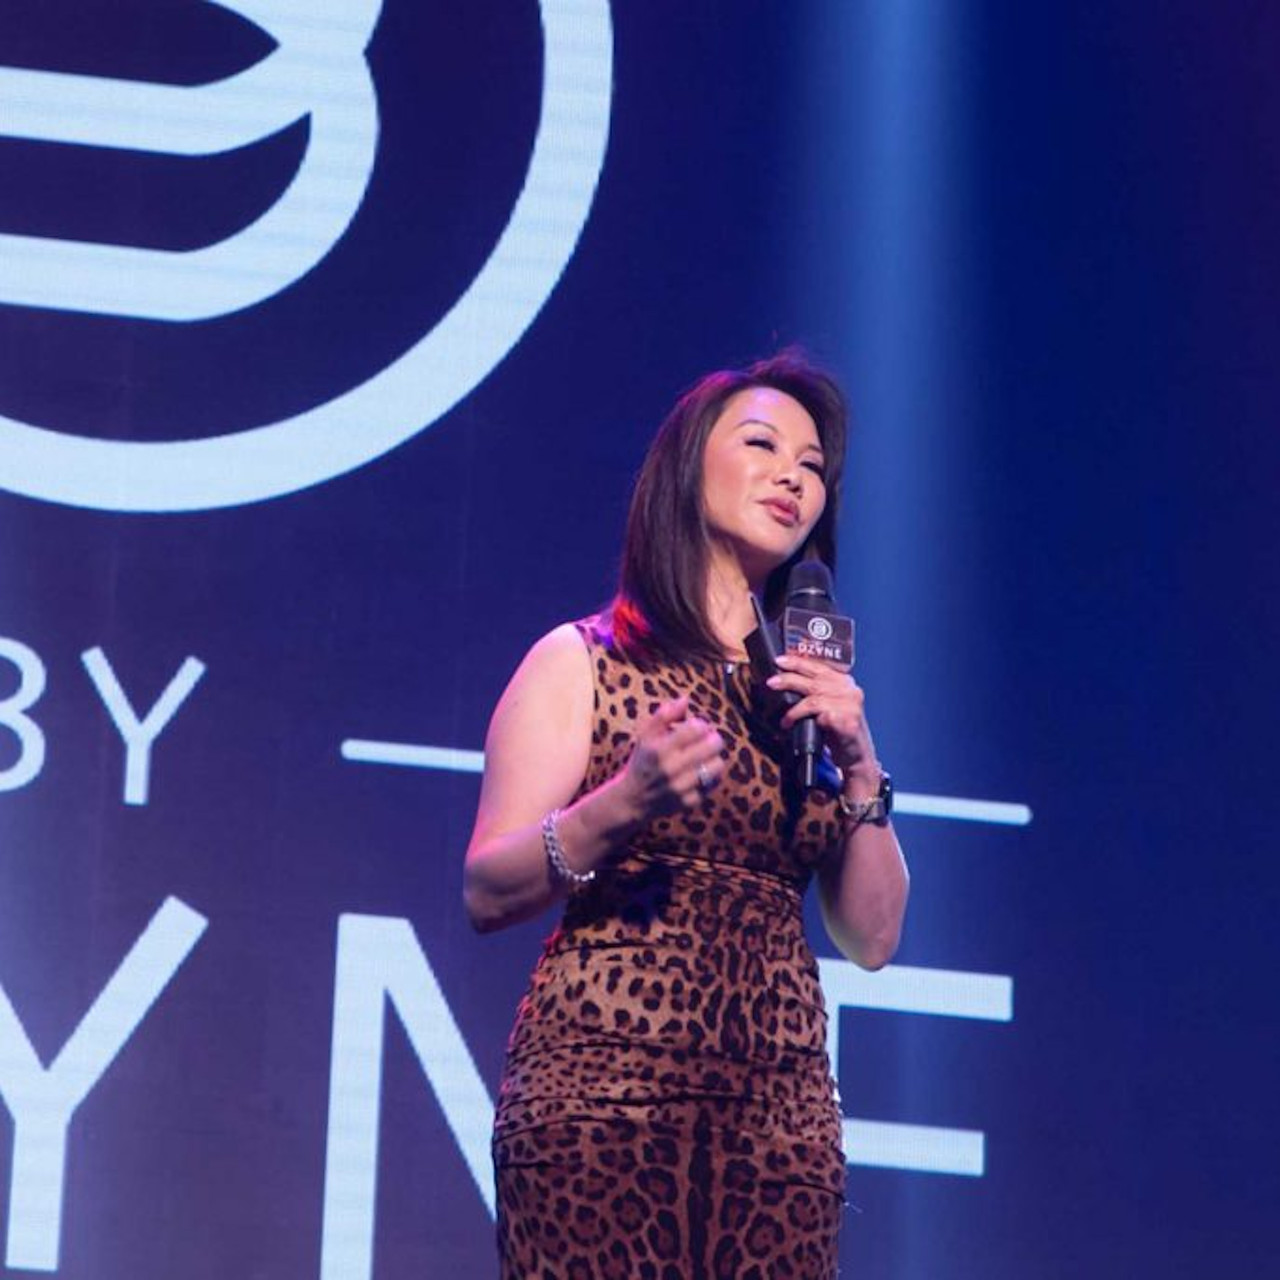 ByDzyne Launches With Industry Veteran, Sophia Wong, President & Co-Founder